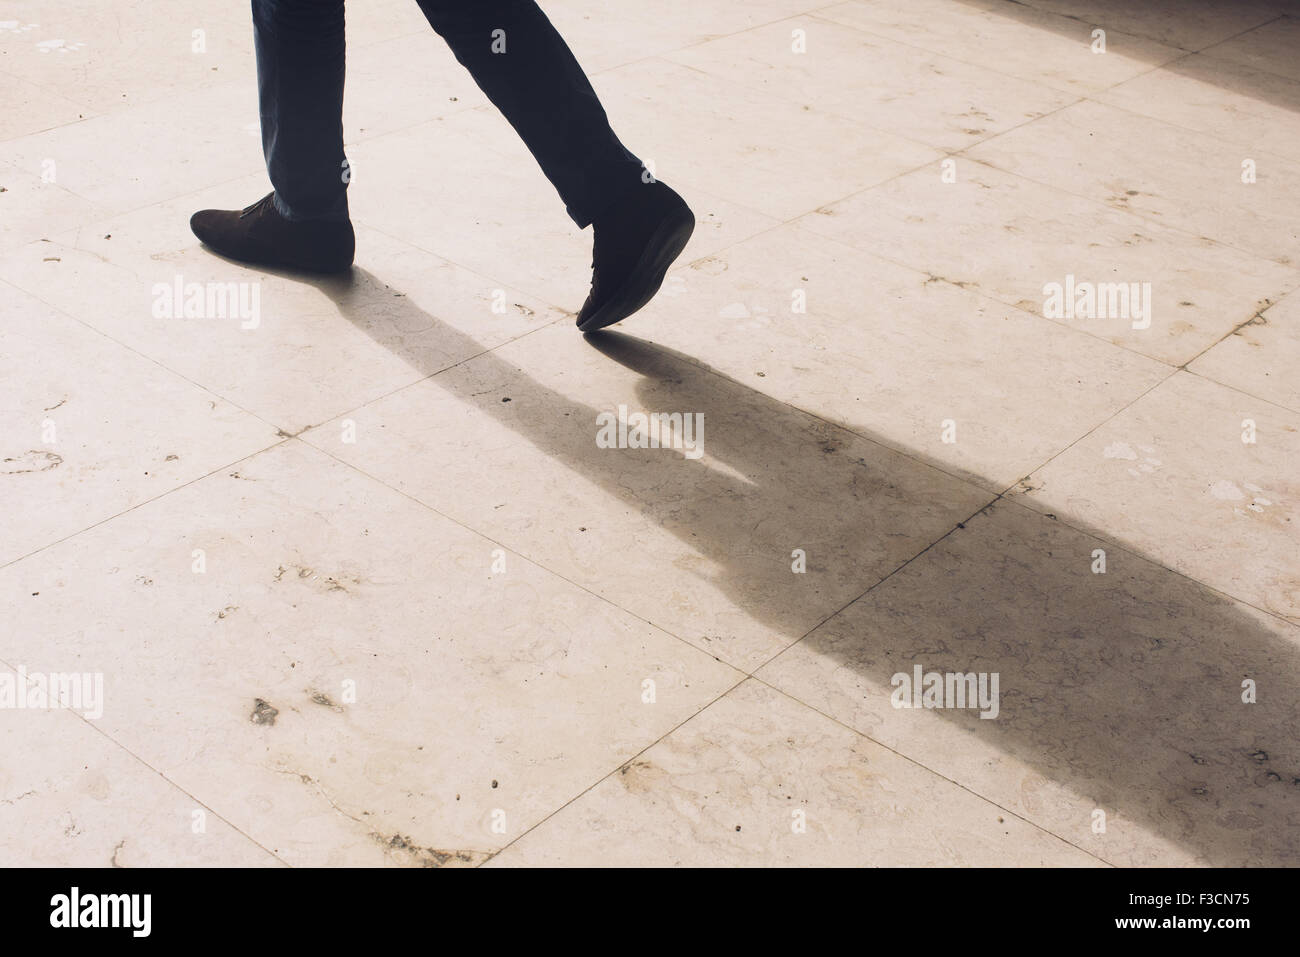 Pedestrian on the move - Stock Image